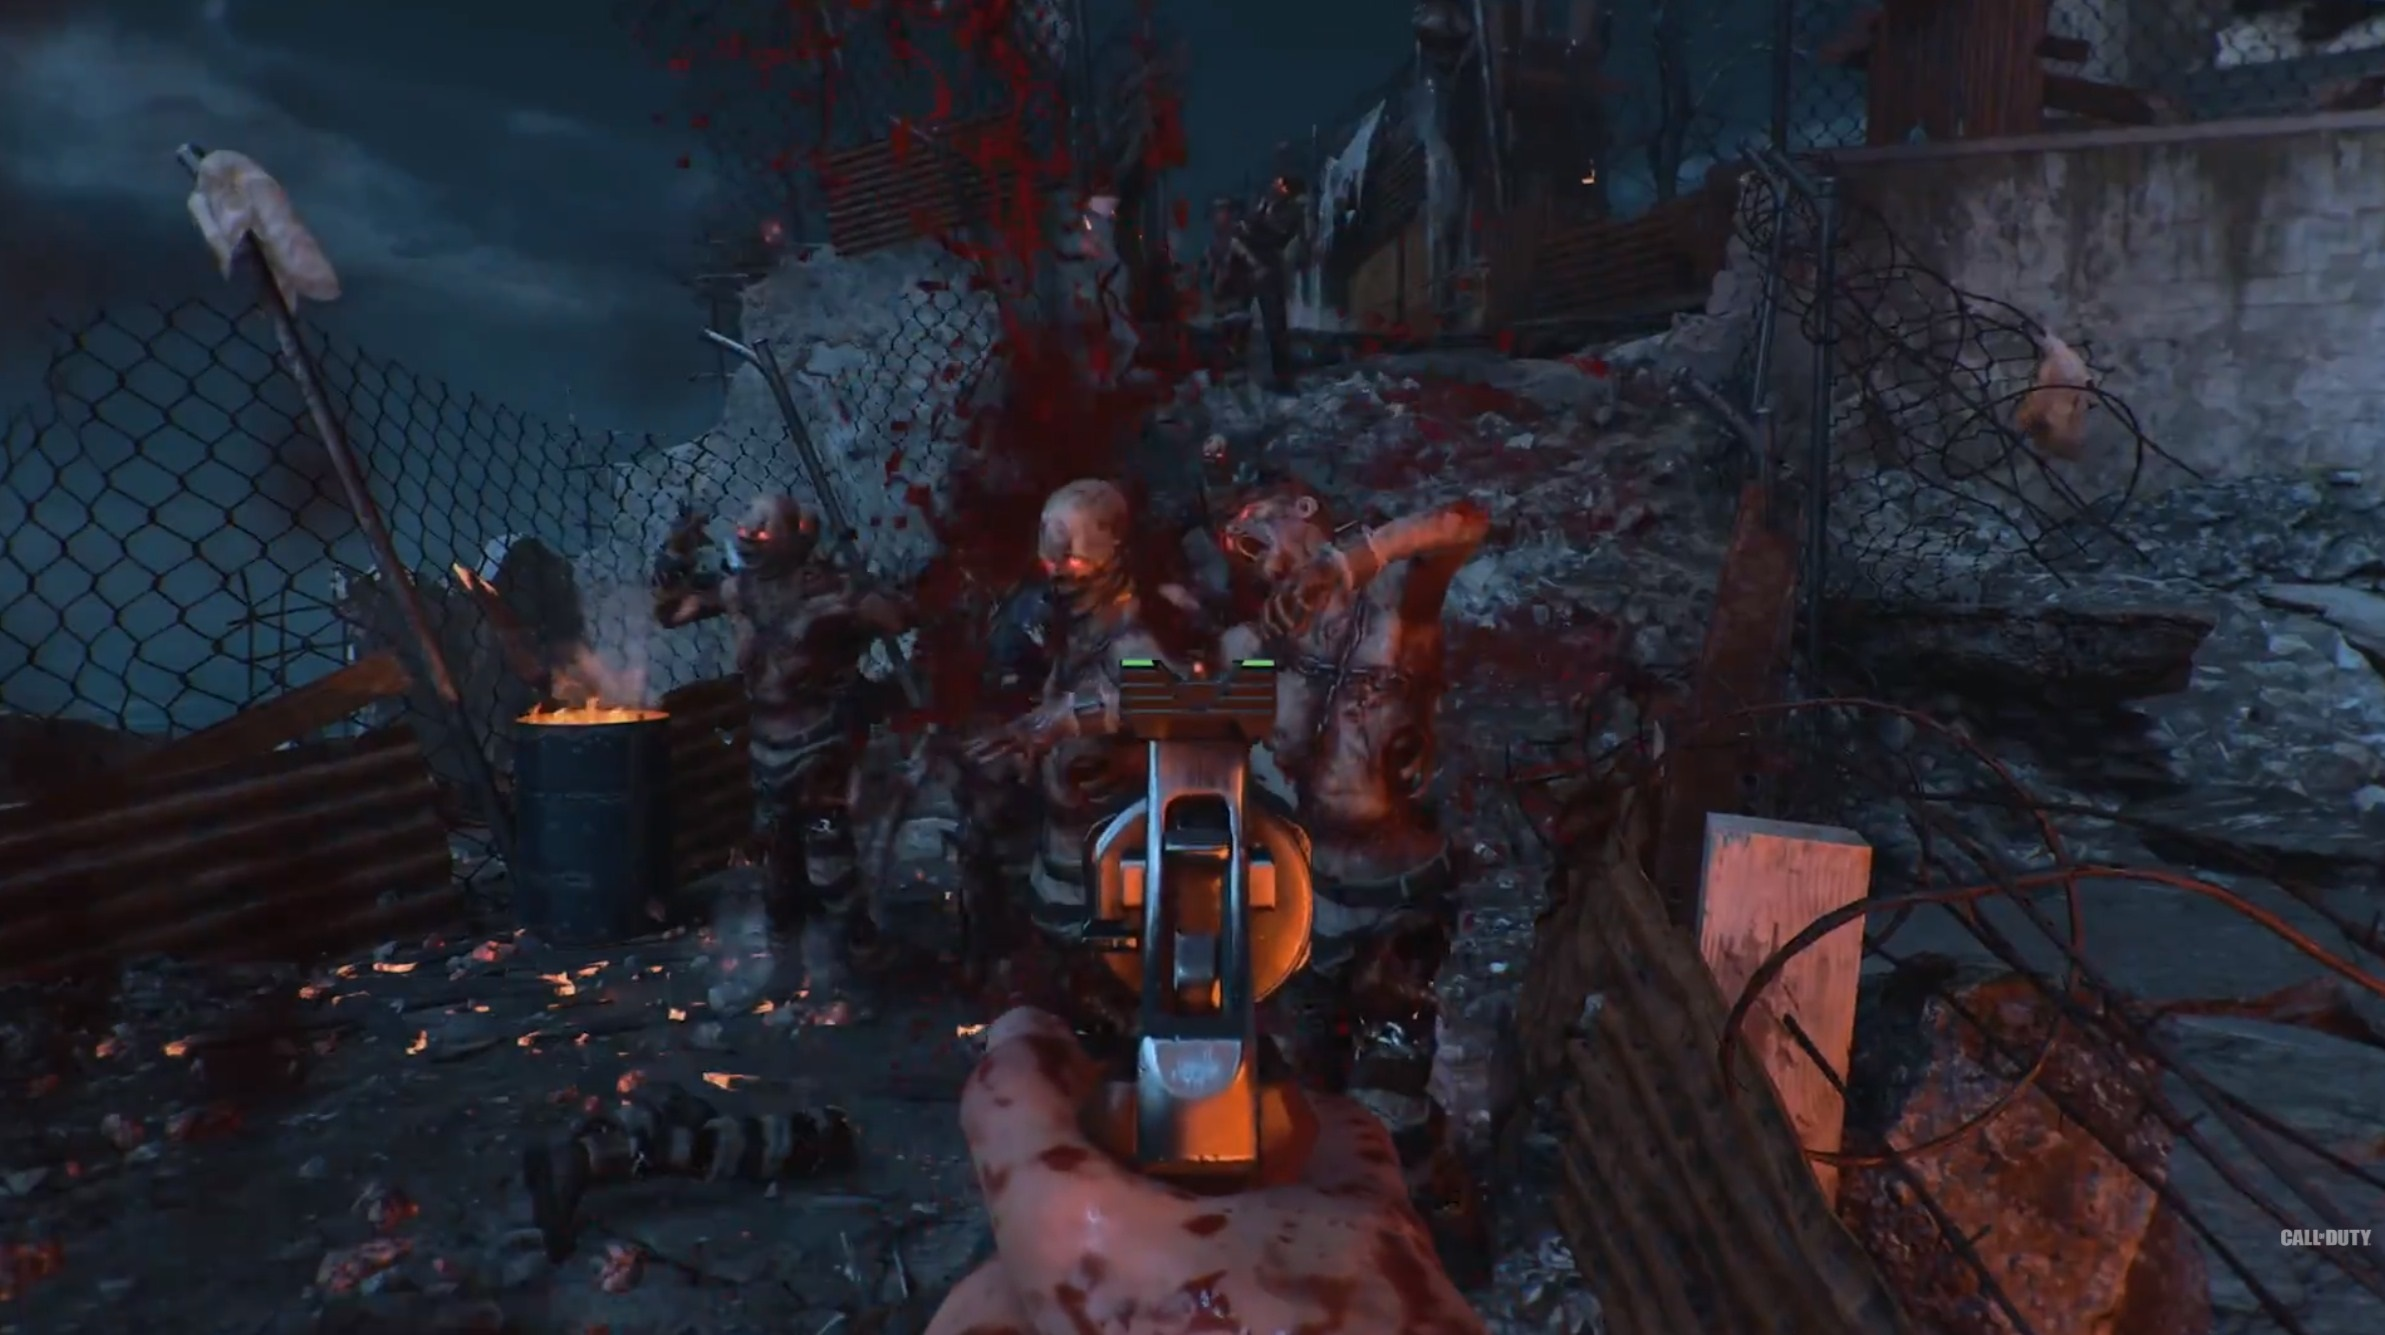 Call of Duty Black Ops 4: Zombies - Blood of the Dead trailer